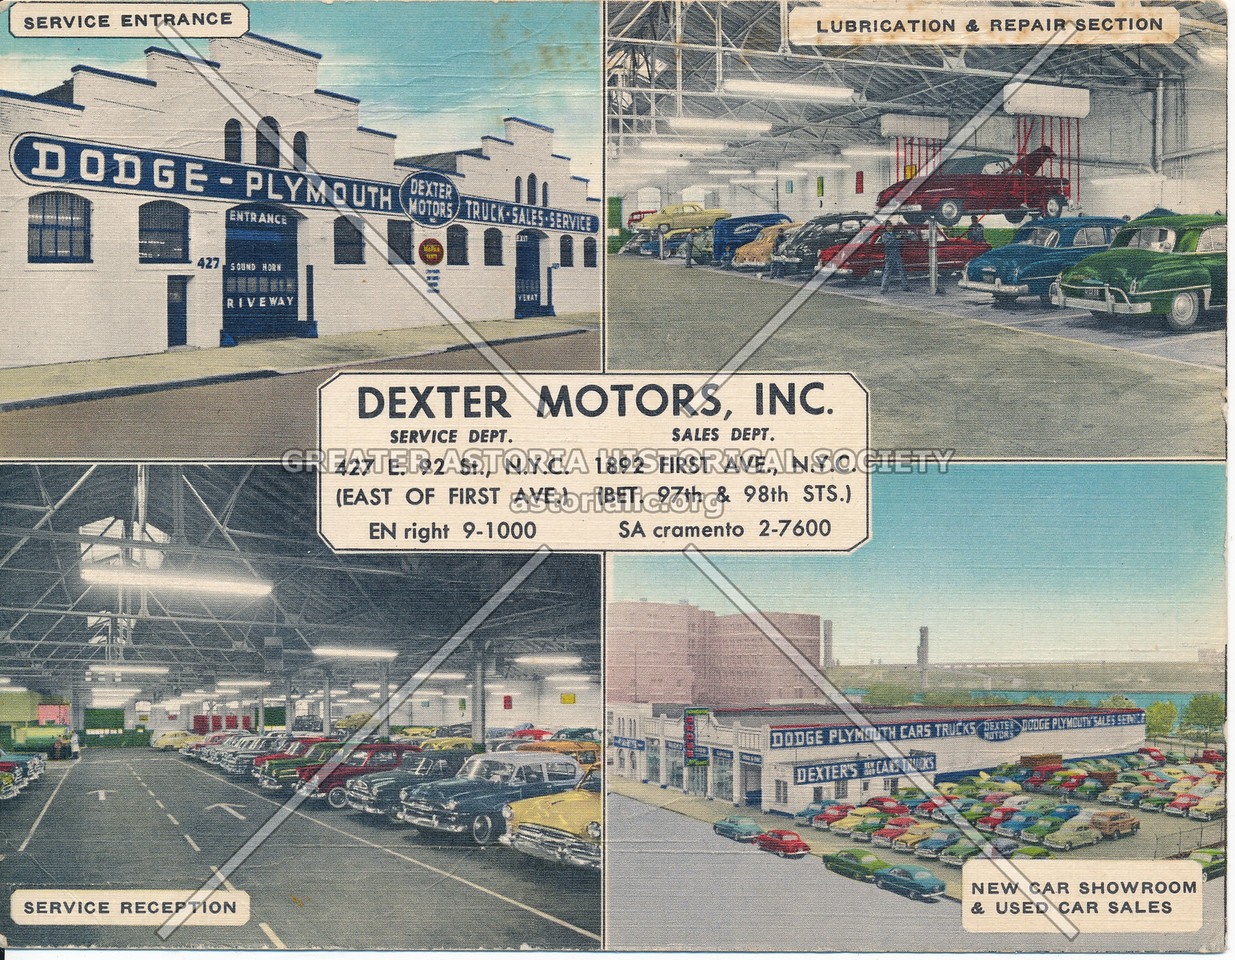 Dexter Motors, 427 E 92 & 1892 First Ave, NYC